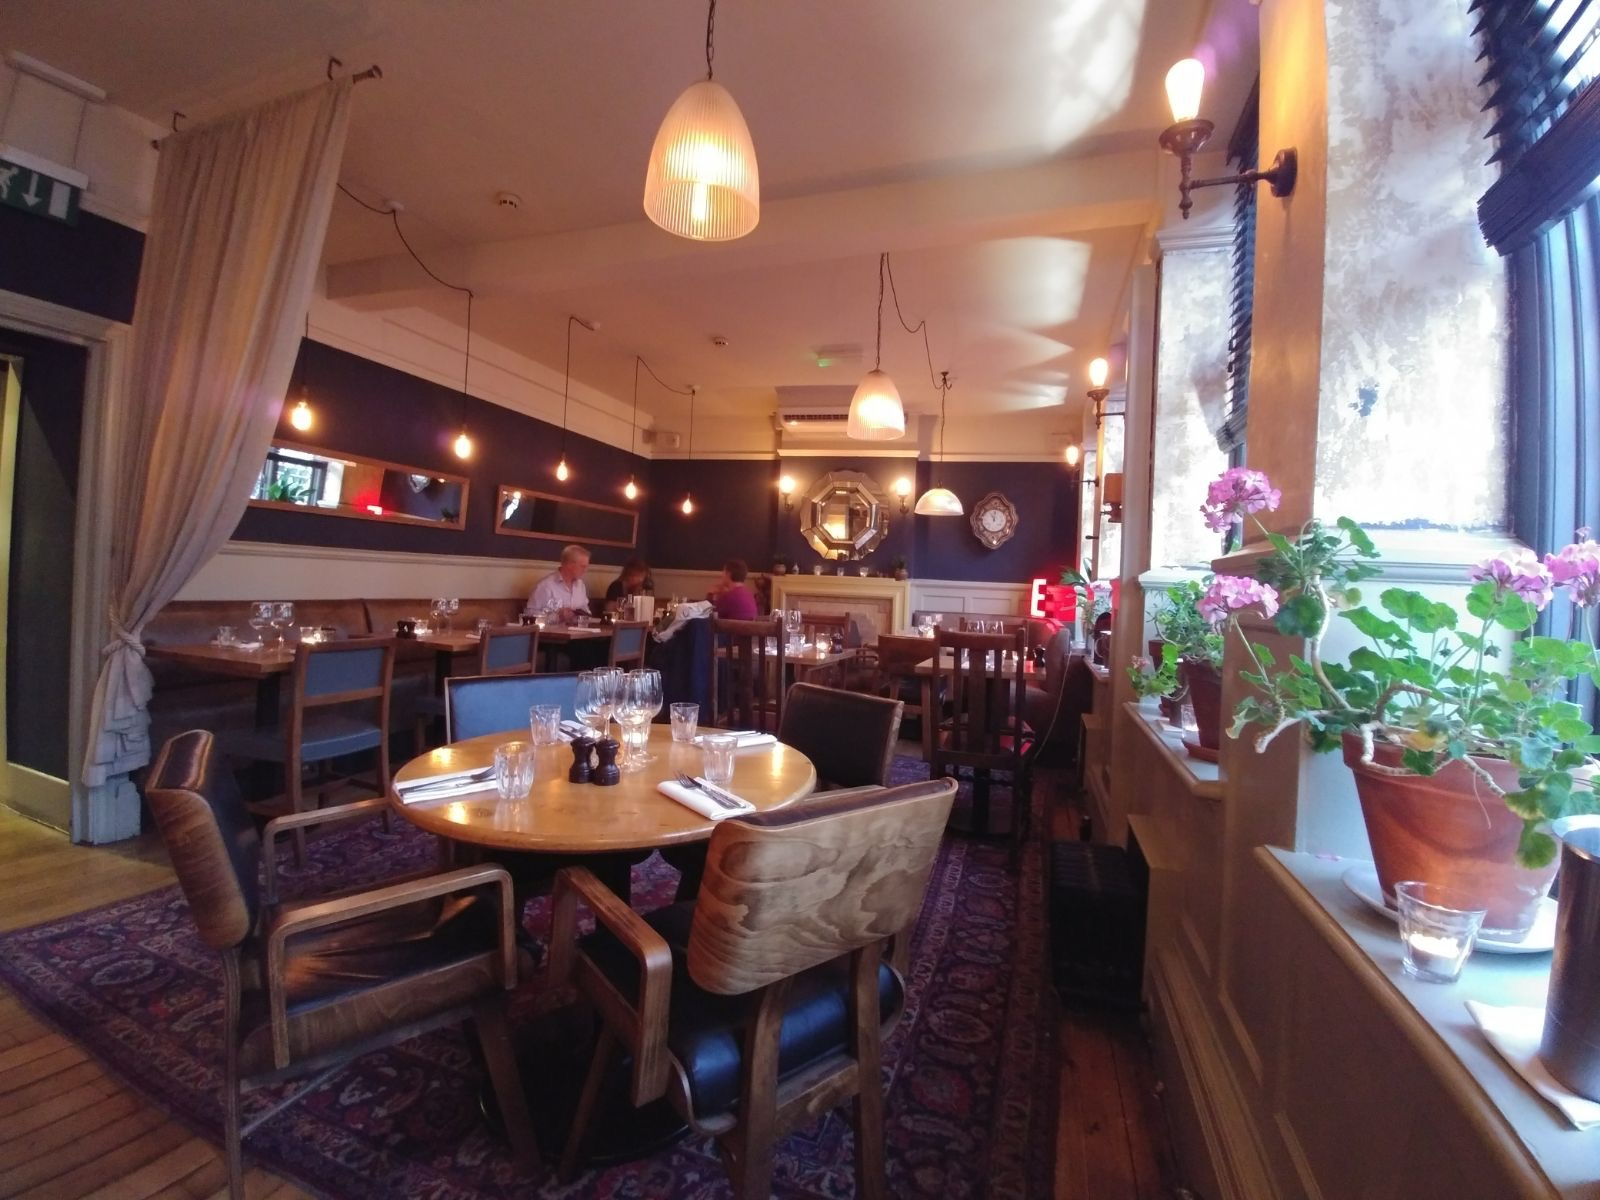 Edwins Borough restaurant review